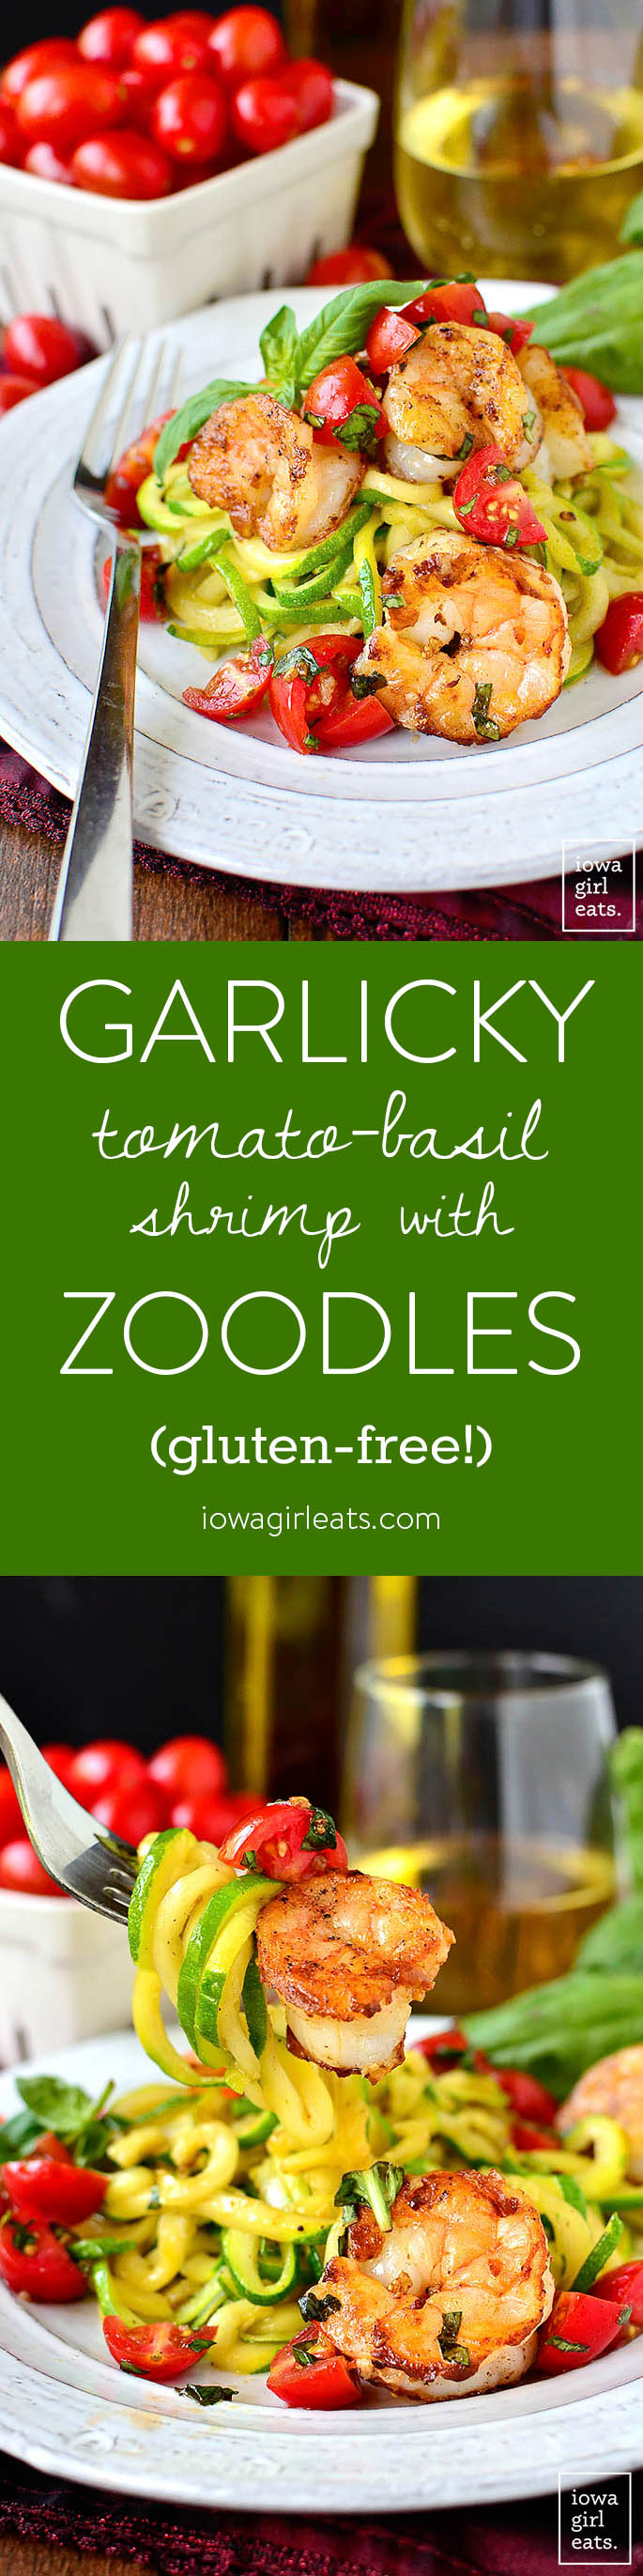 Garlicky Tomato-Basil Shrimp with Zoodles is a fresh and healthy, gluten-free summer dinner recipe. Quick, easy and made in 1 skillet!   iowagirleats.com